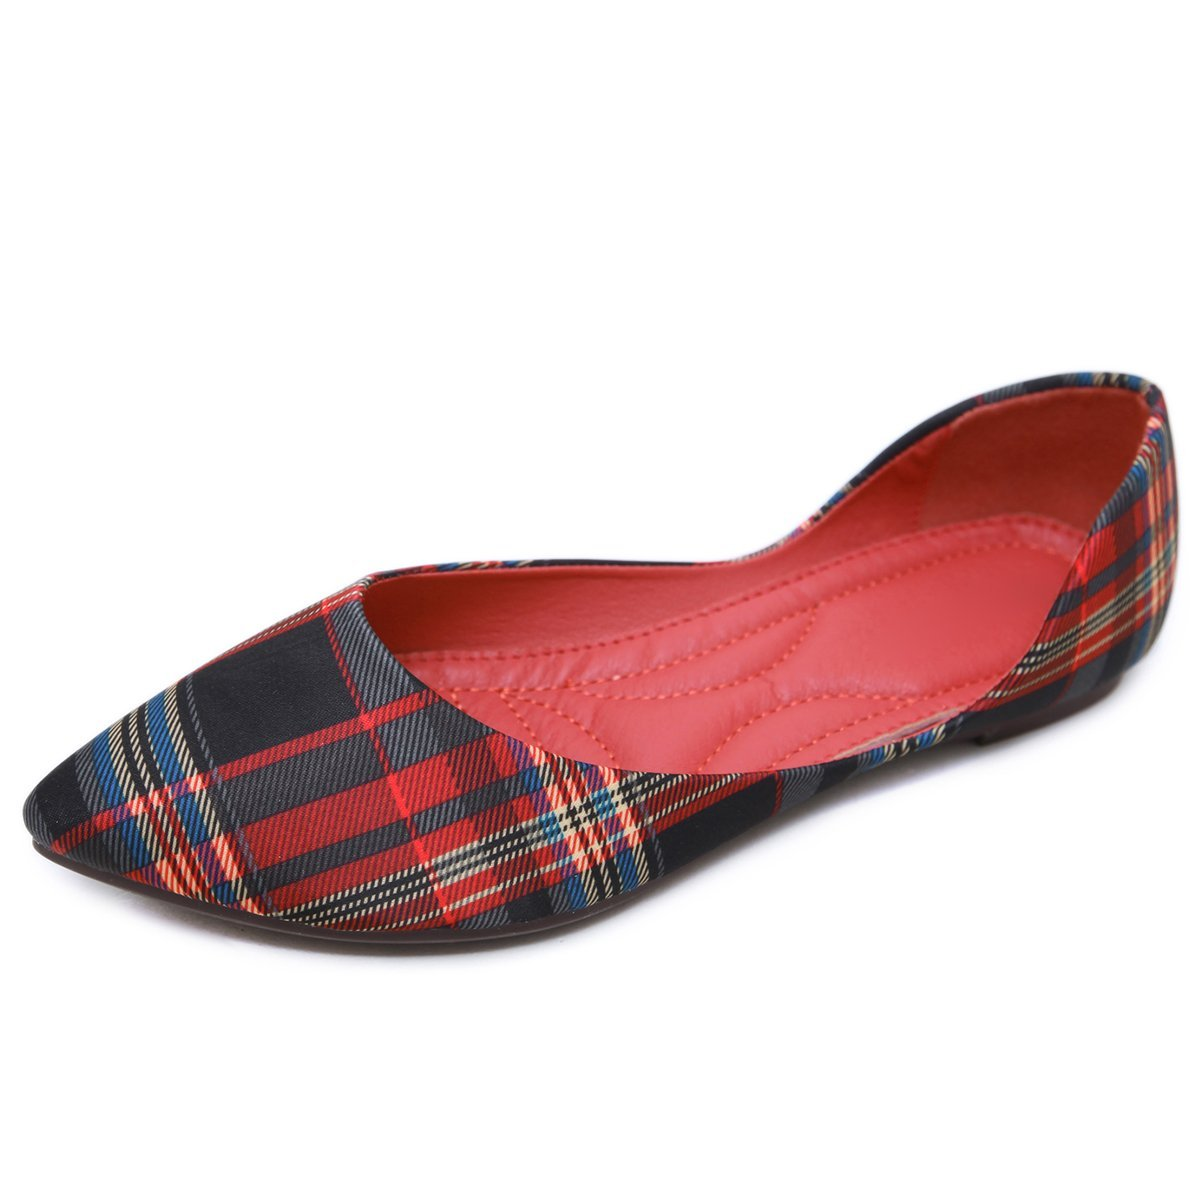 DeerYou Women's Classic Ballet Flat Pointed Toe Slip On Ballerina D'Orsay Flat Shoes Red US 9.5